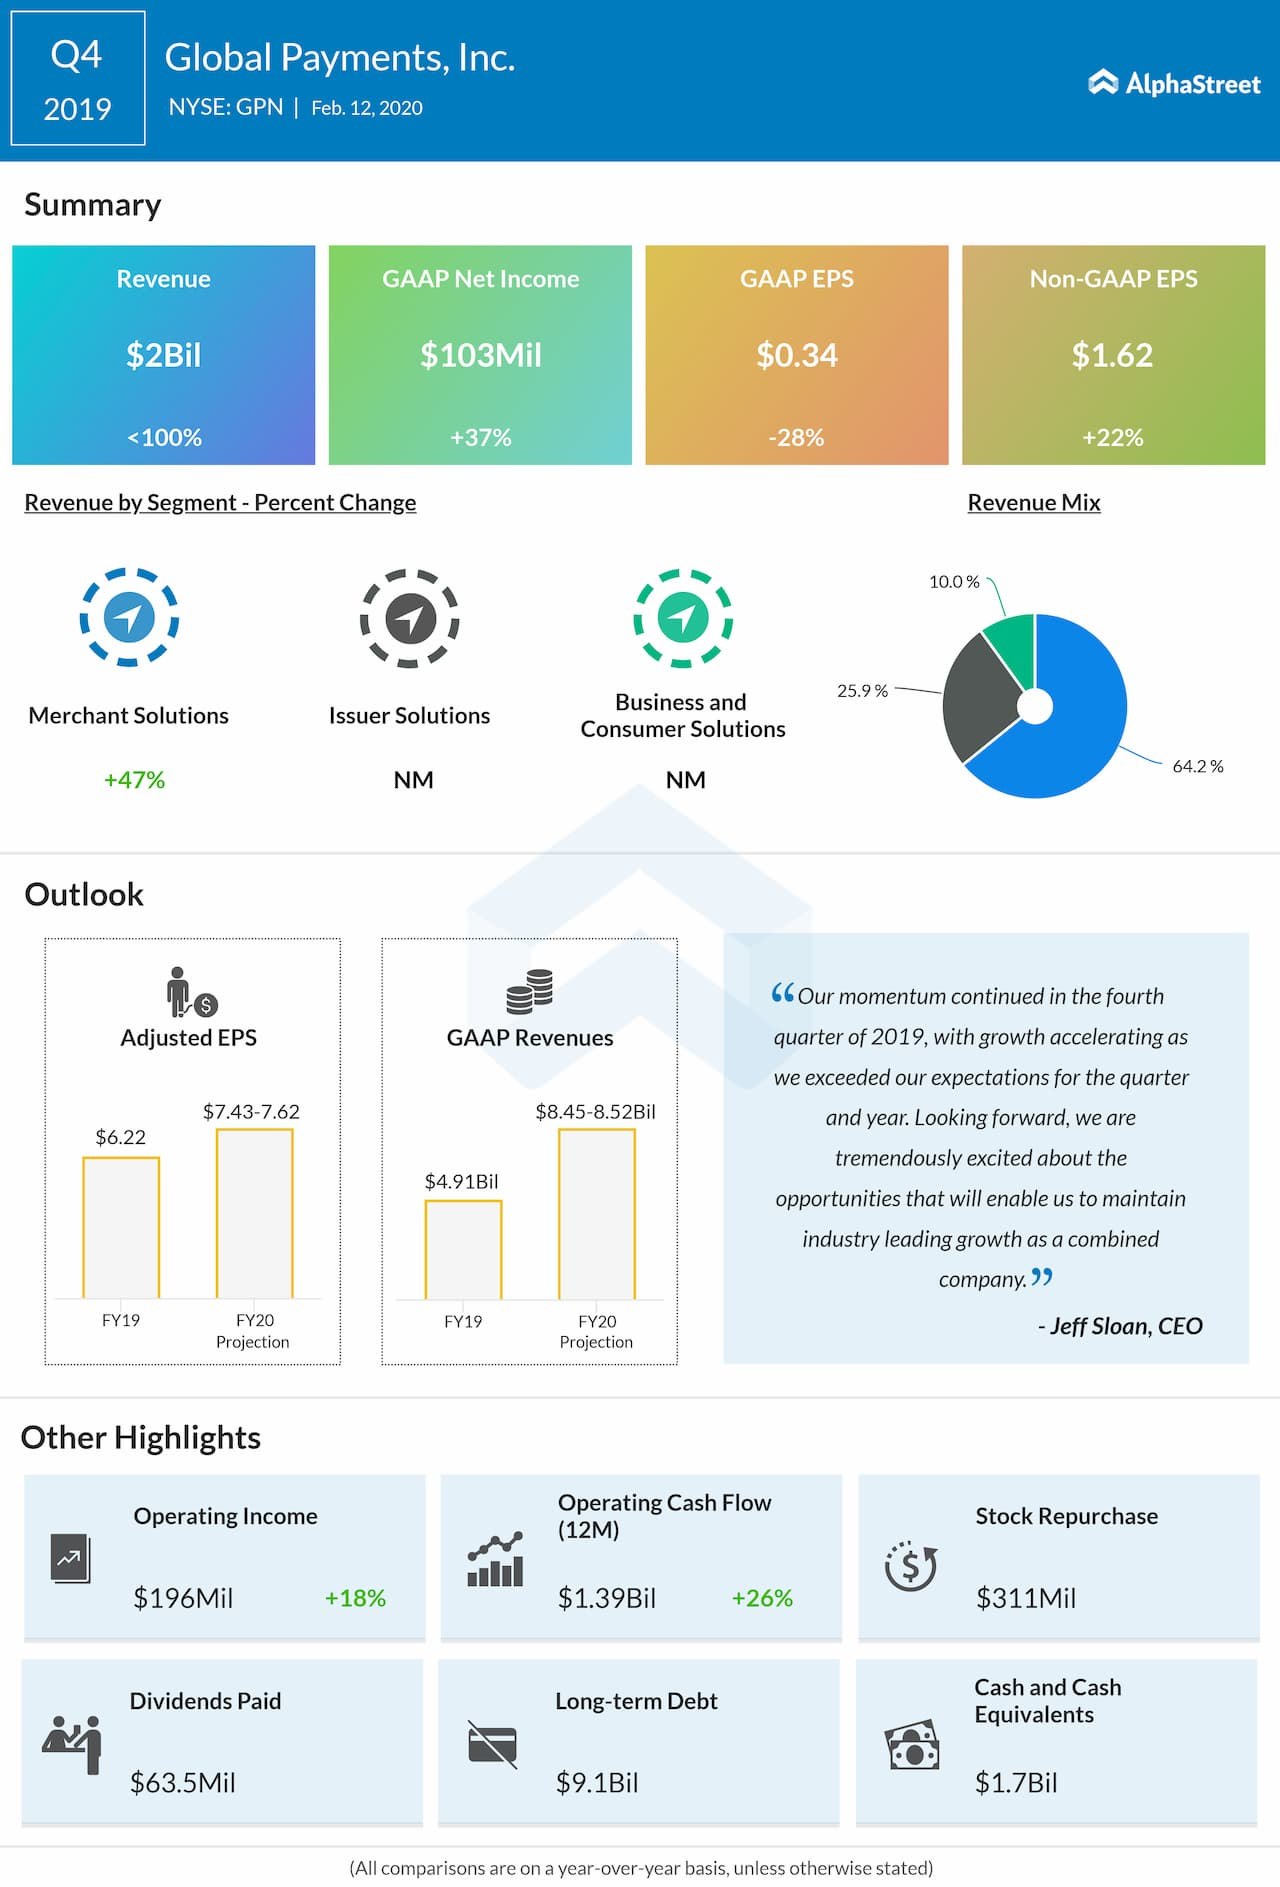 Global Payments (GPN) Q4 2019 earnings snapshot